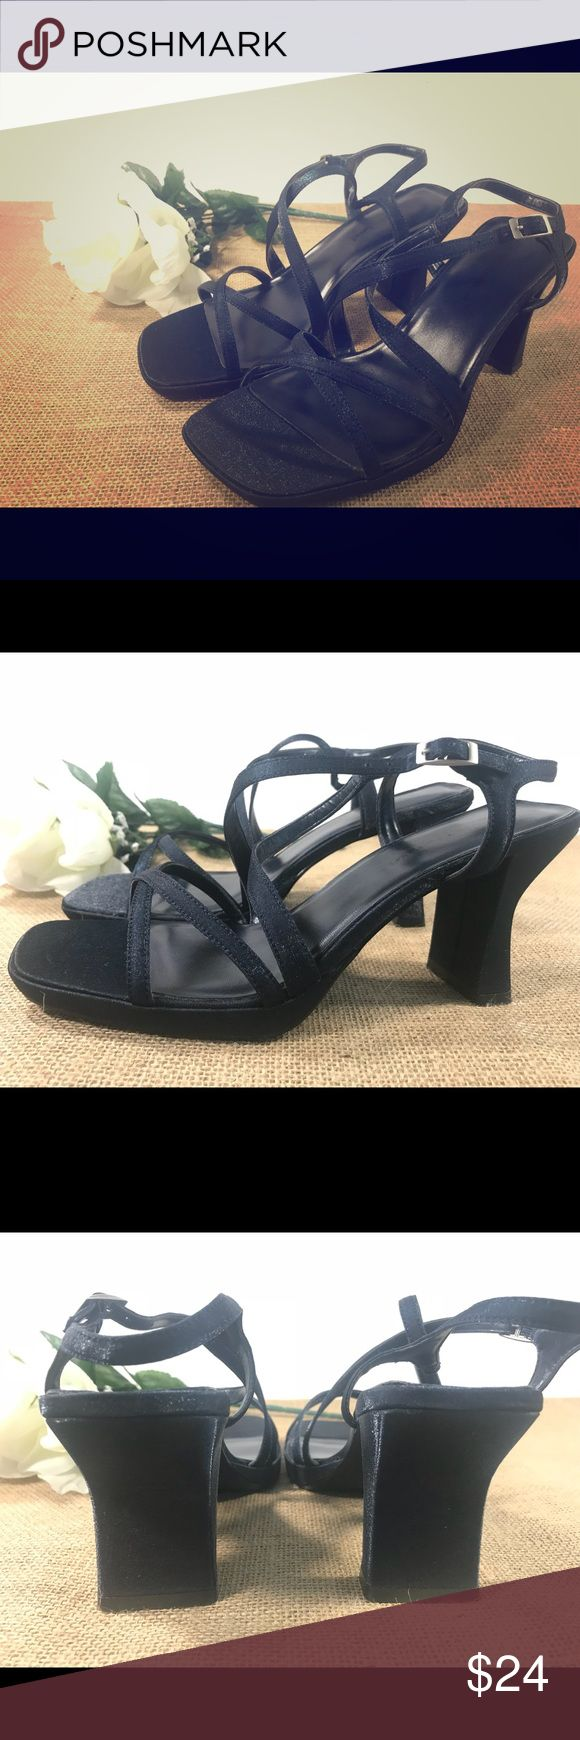 "Womens 6.5 Navy Strappy Heels by ""Unlisted"" These are in great condition!  Dark navy blue heel, Women's size 6.5 Unlisted Shoes Heels"